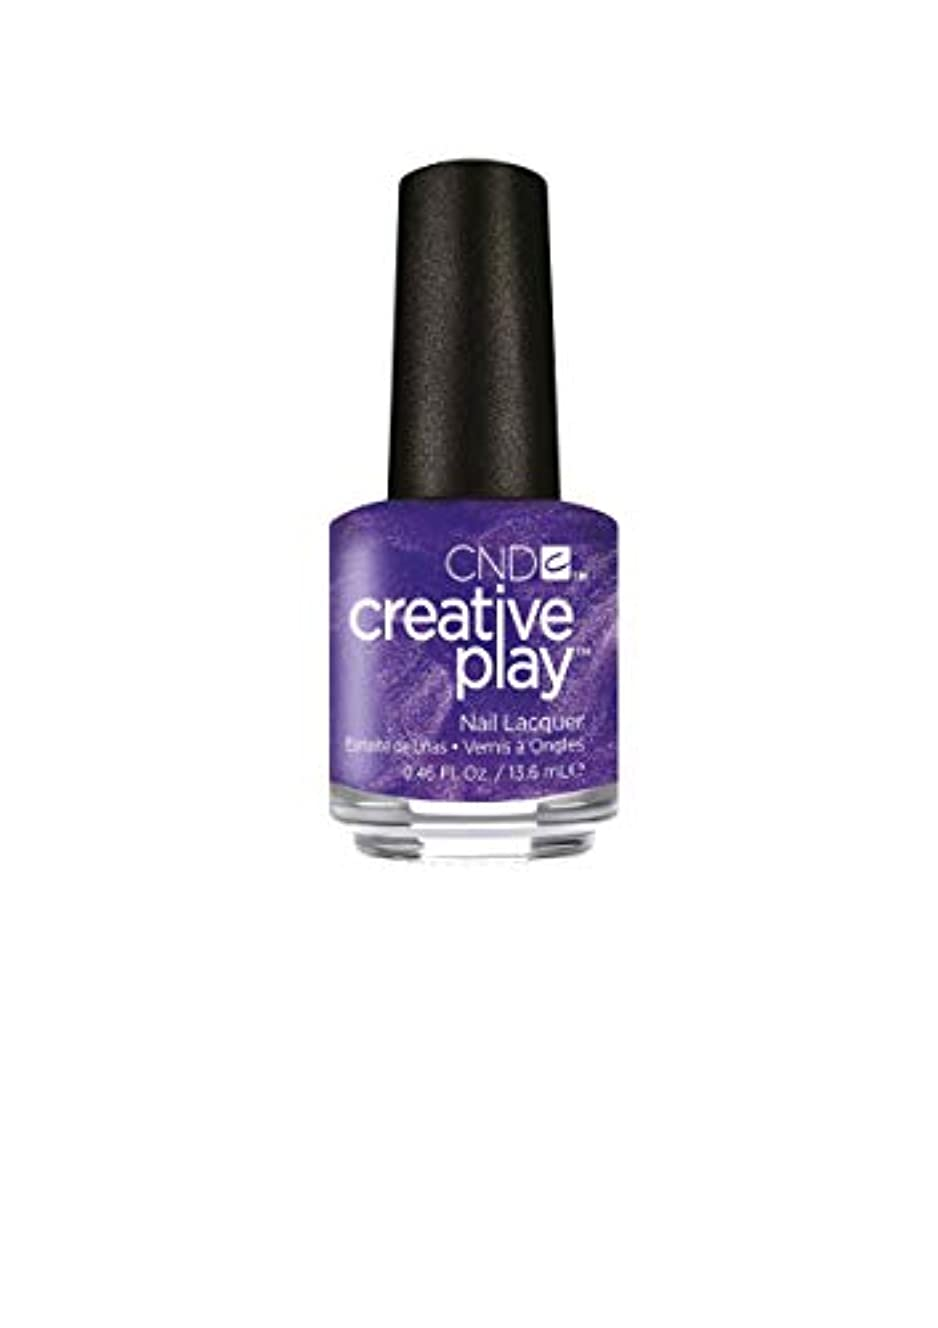 CND Creative Play Lacquer - Cue the Violets - 0.46oz / 13.6ml